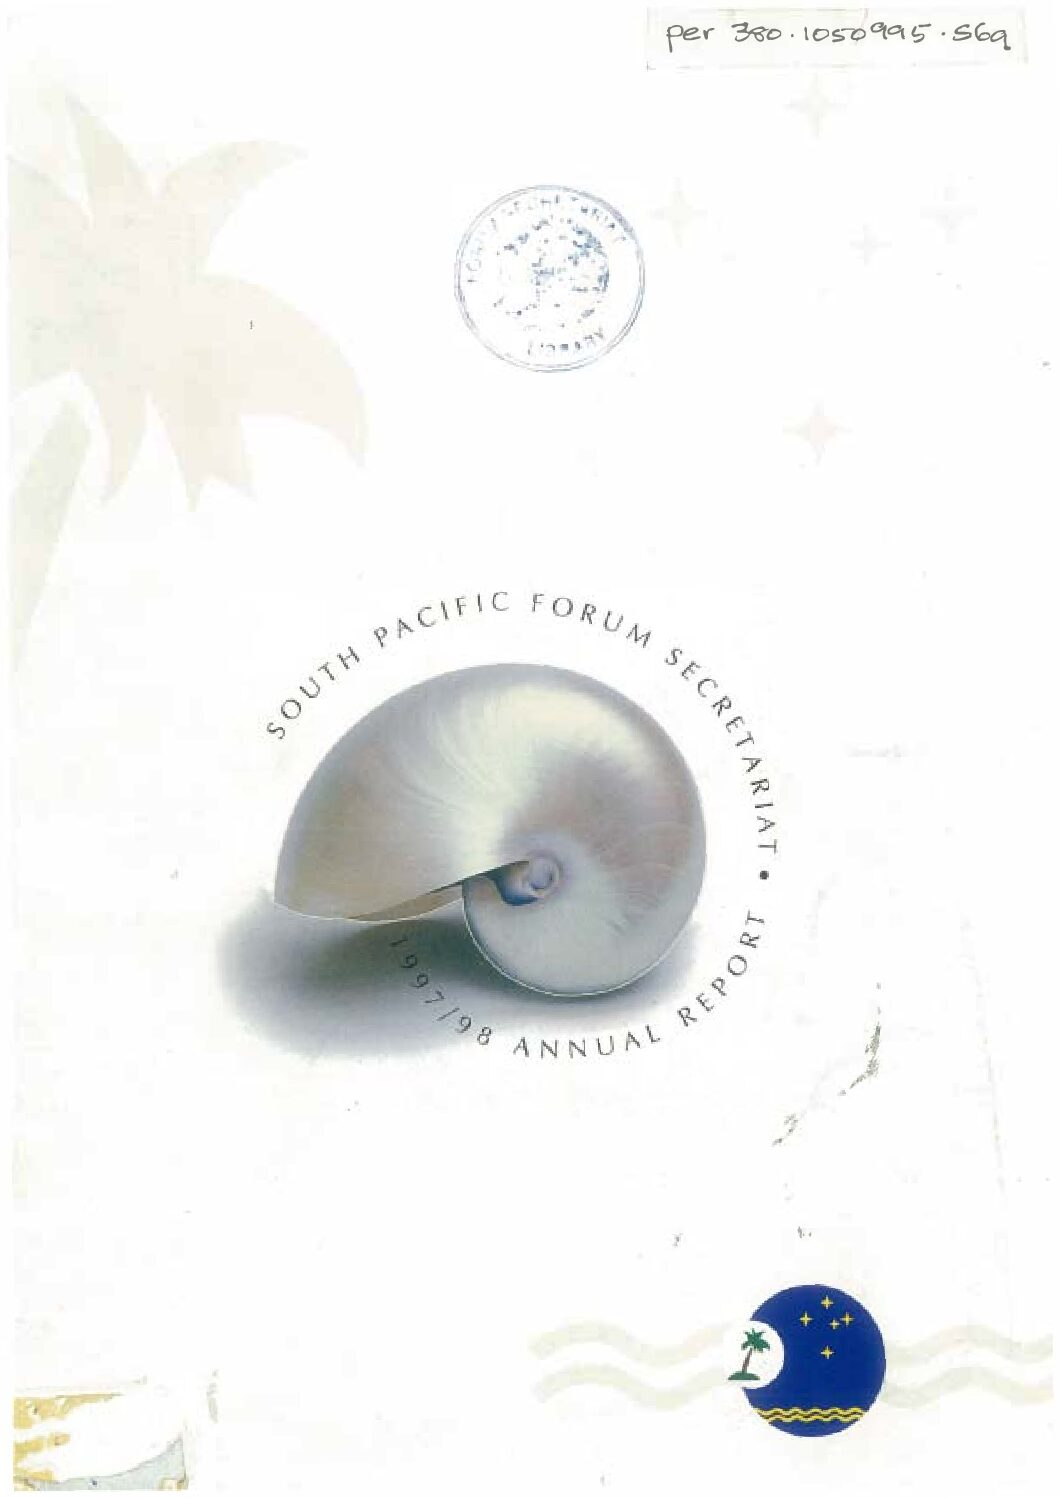 thumbnail of 1997-1998 annual report